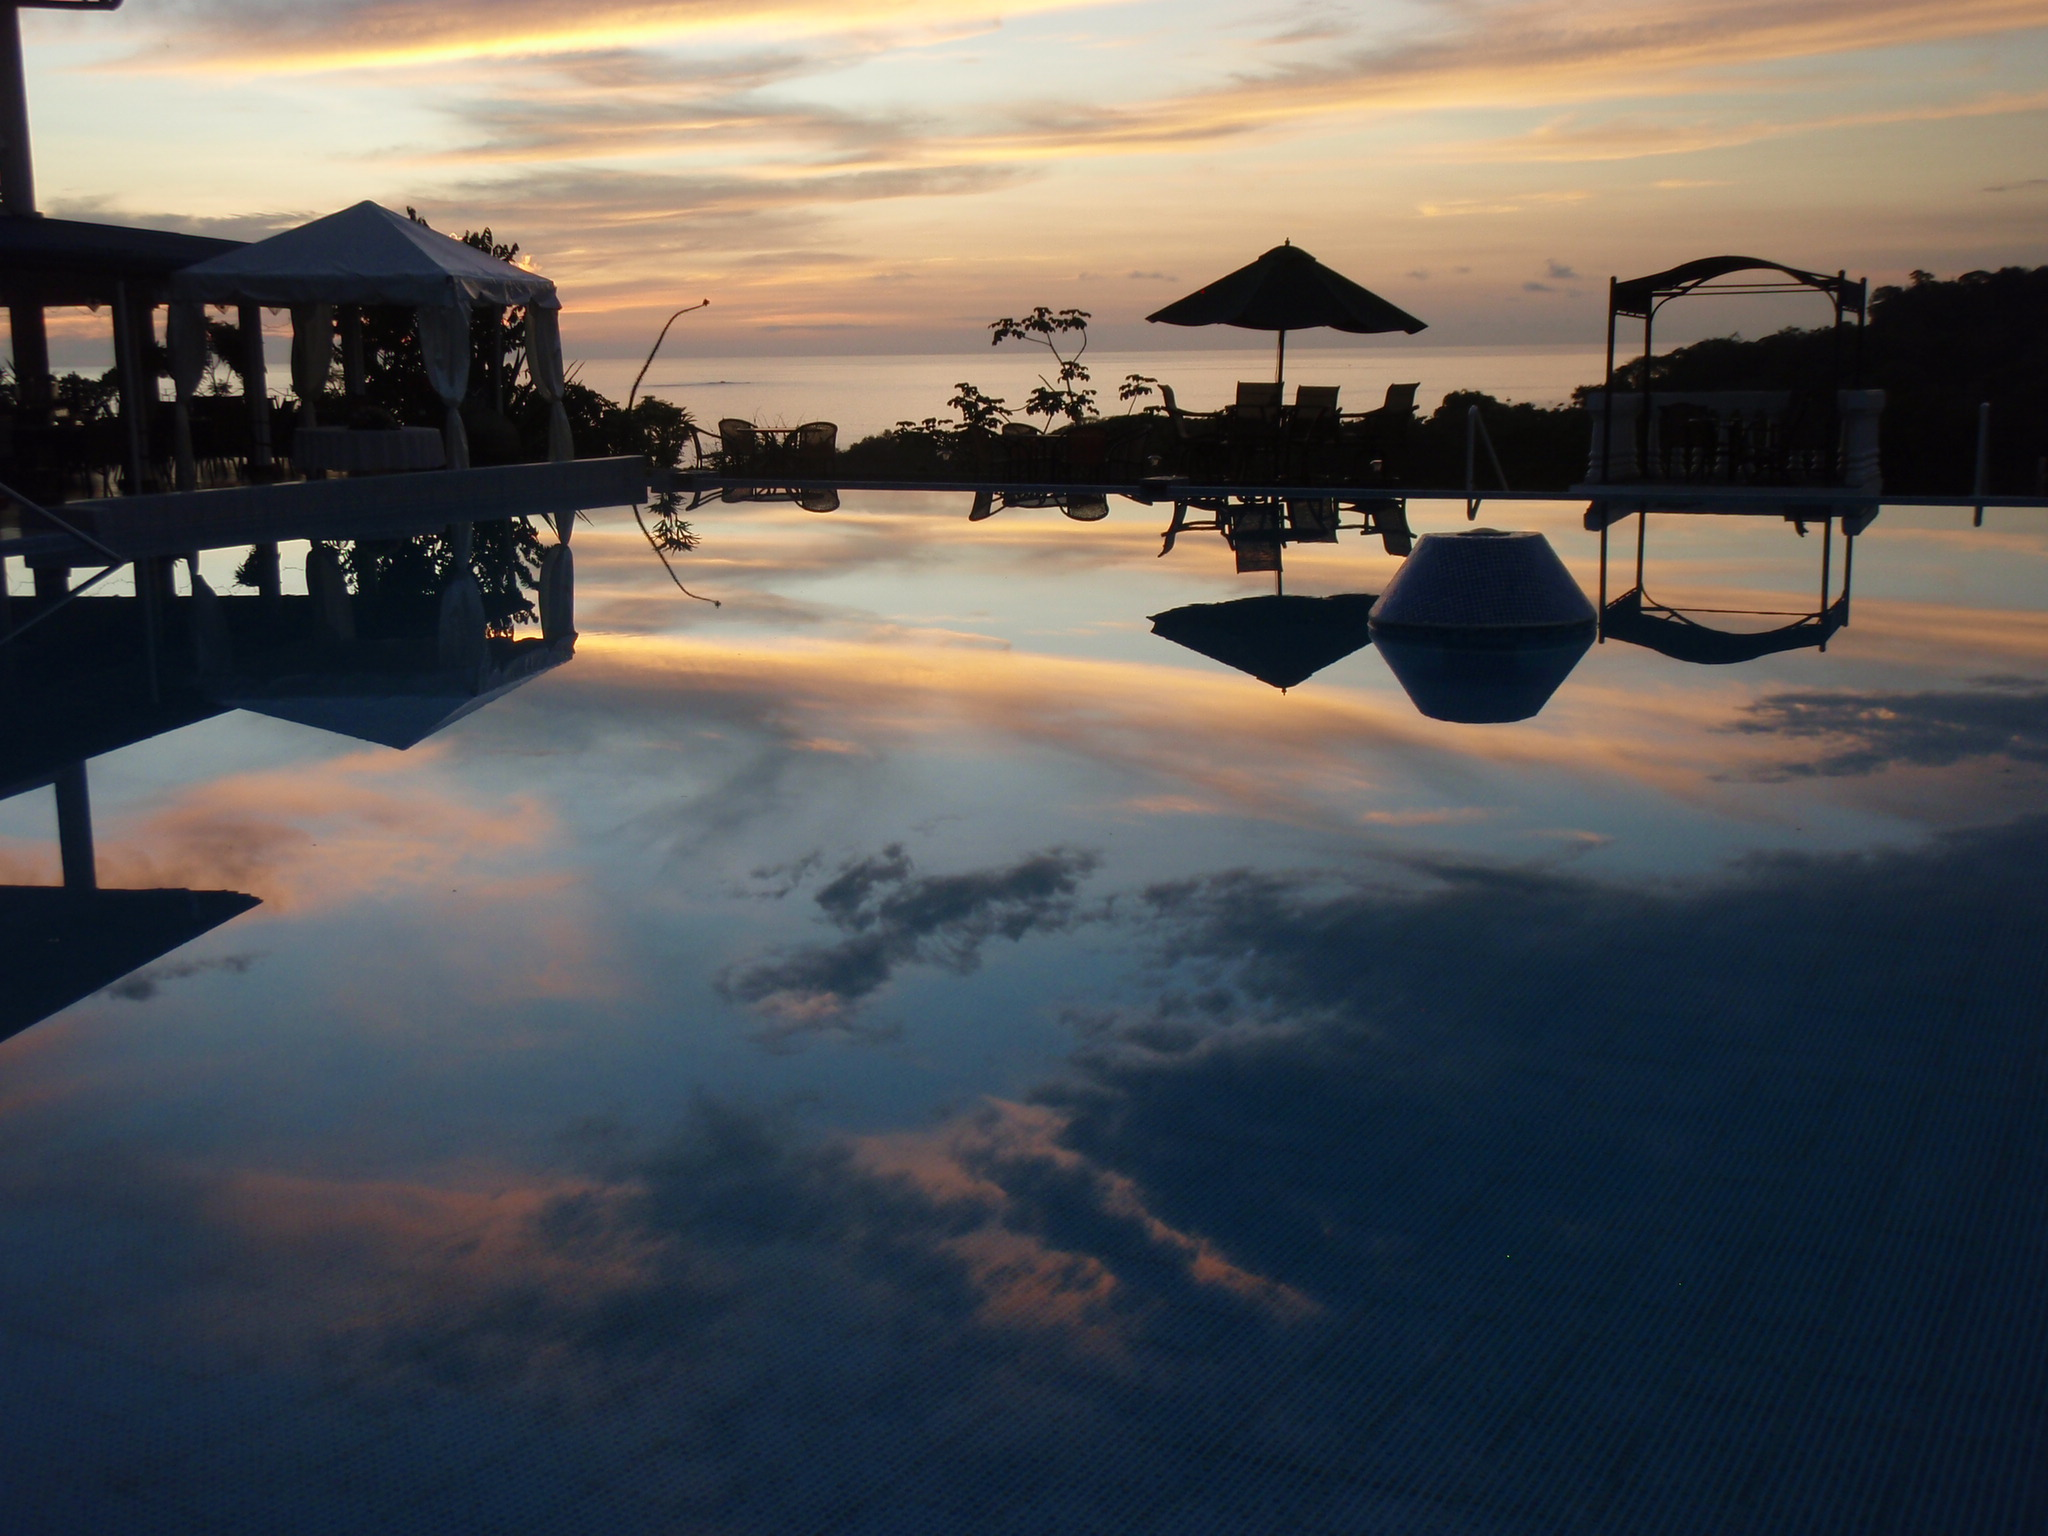 Pool after sunset at Cristal Ballena on evening of my Birthday